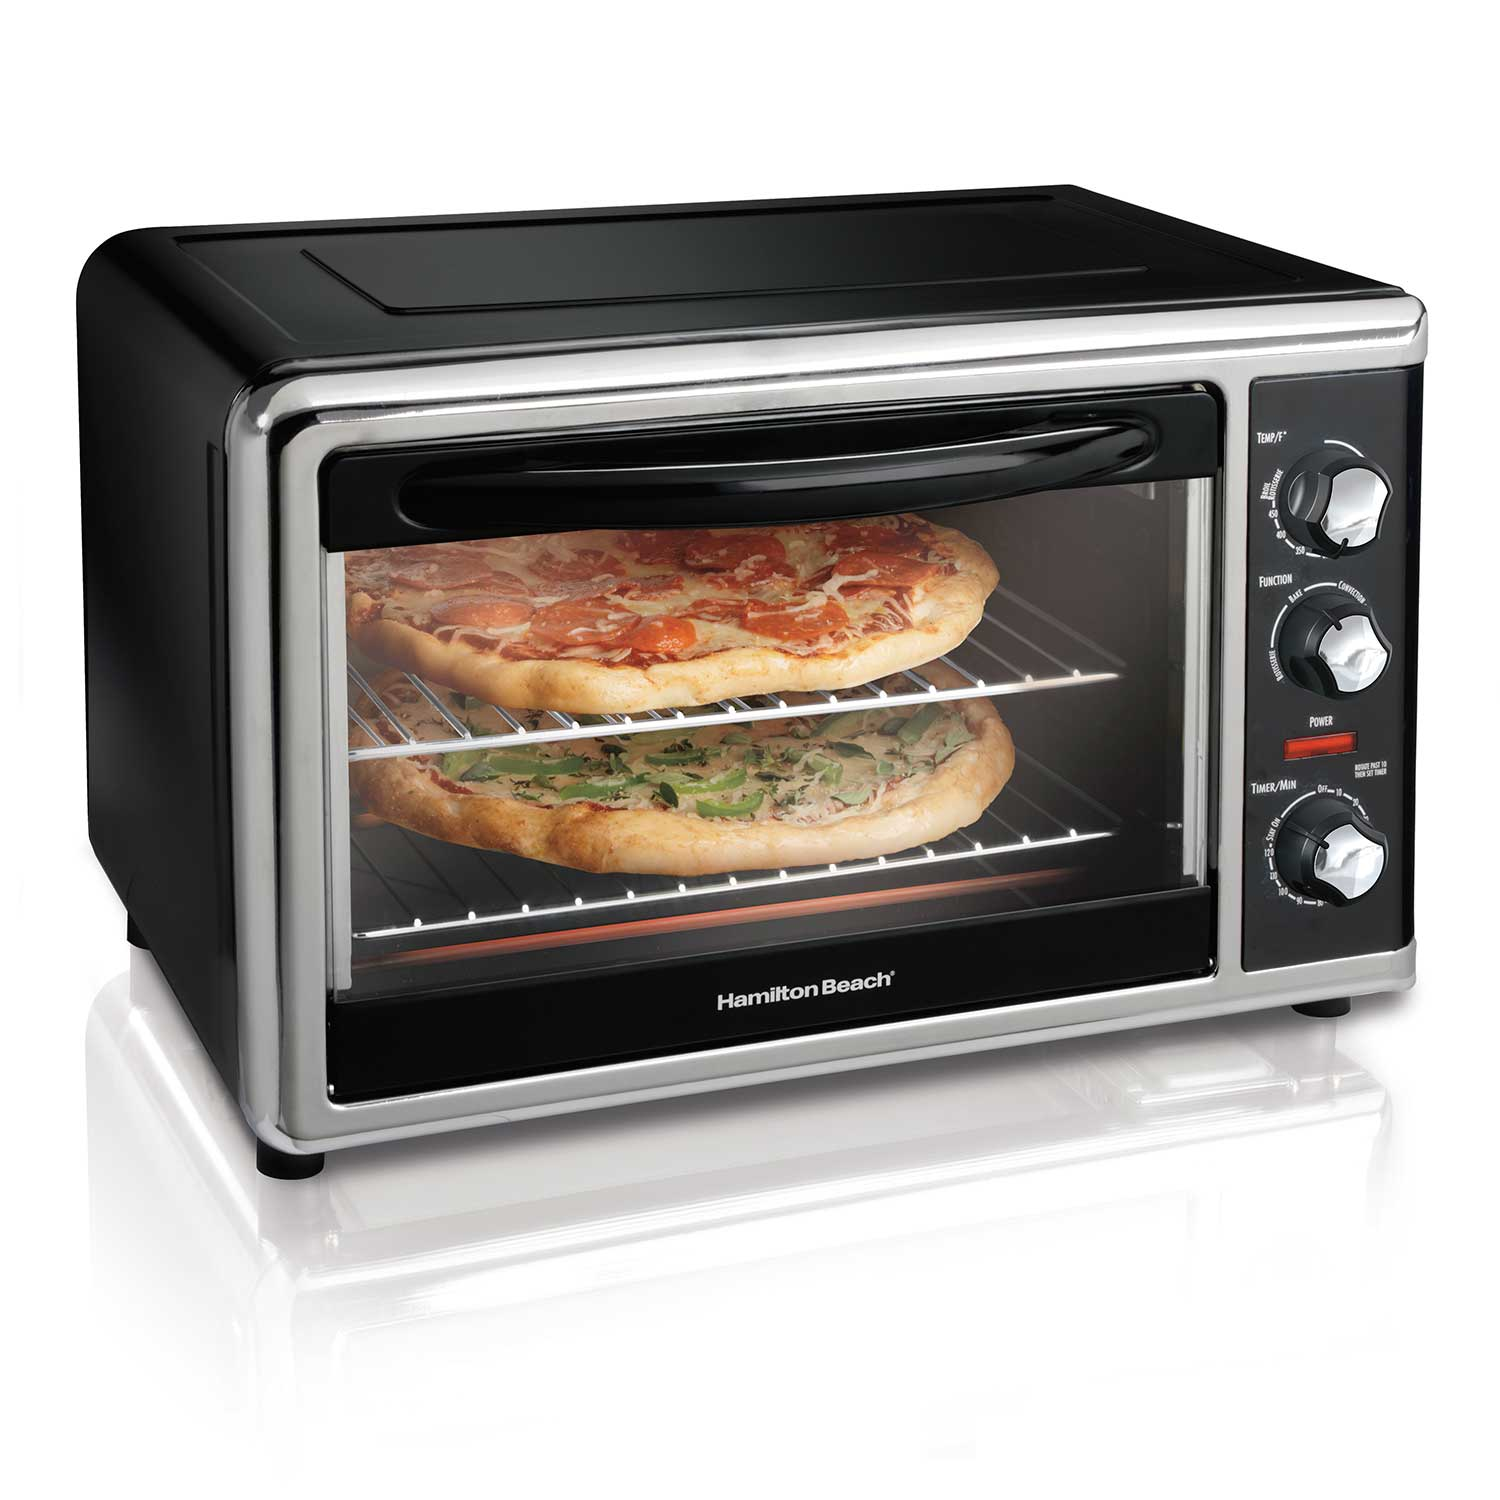 Countertop Oven with Convection and Rotisserie (Black) (31100D)